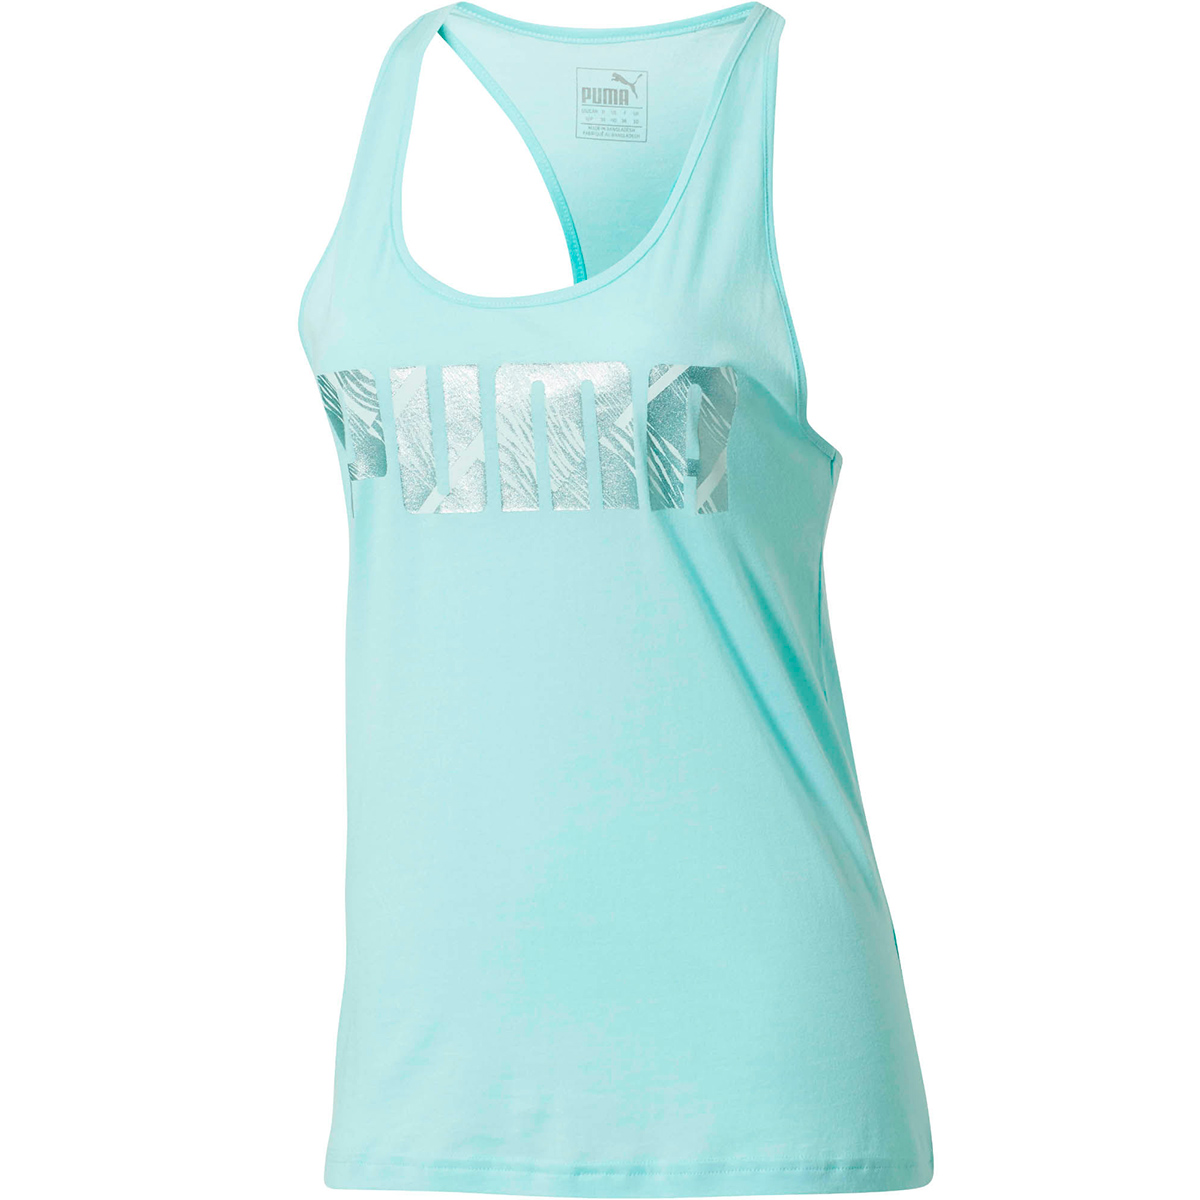 Puma Women's Summer Tank Top - Blue, XL